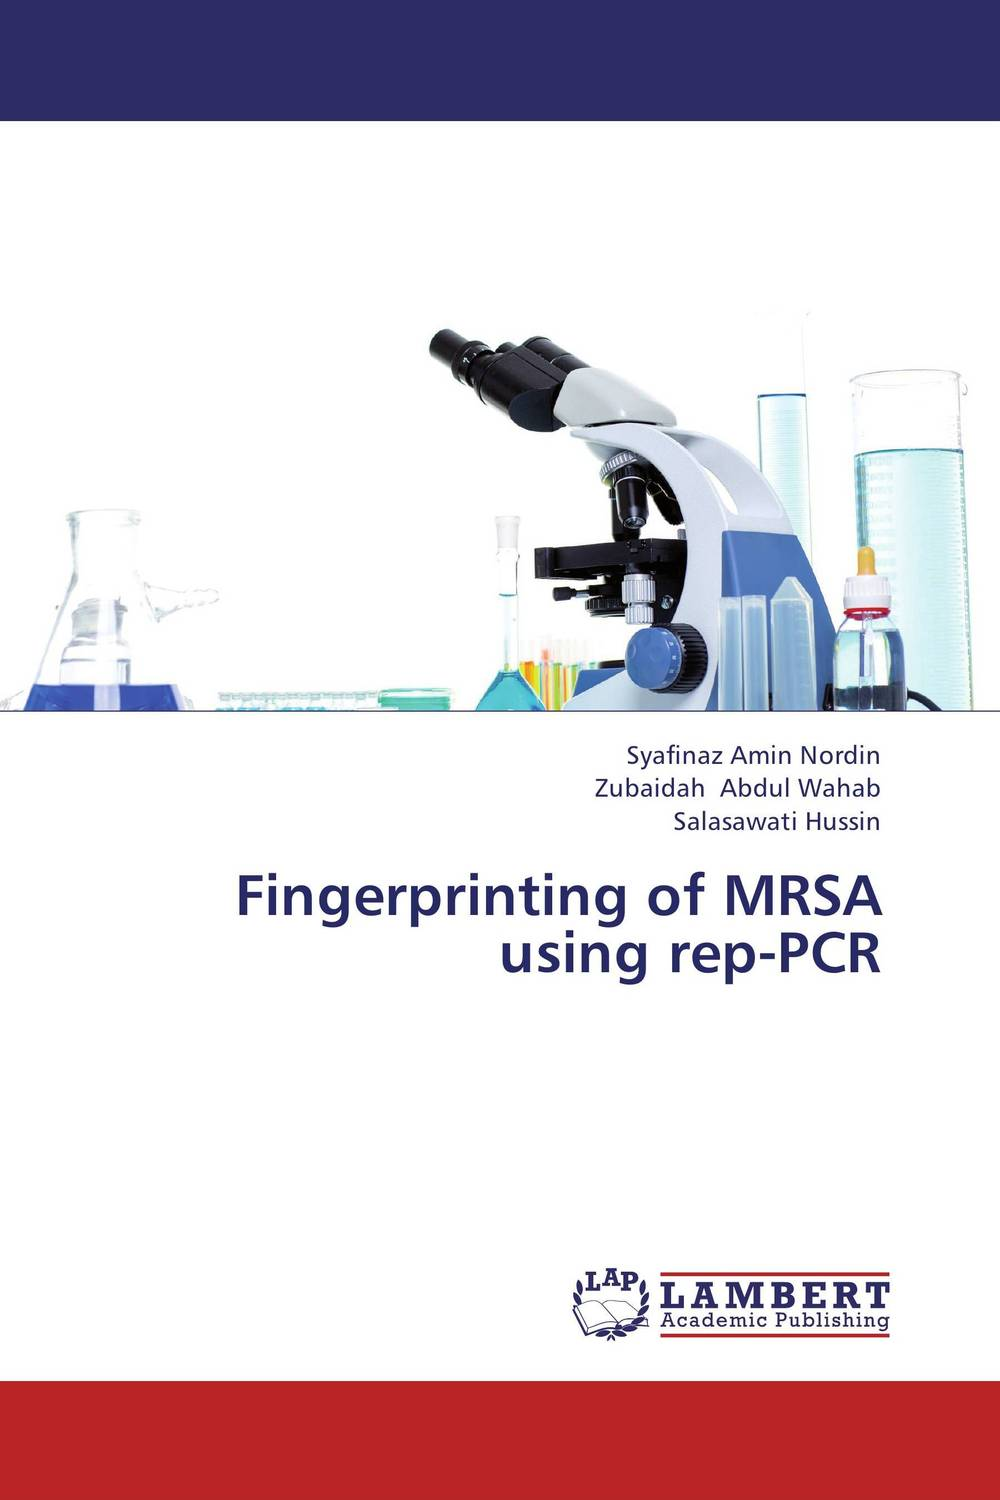 Fingerprinting of MRSA using rep-PCR mrsa bacteraemia